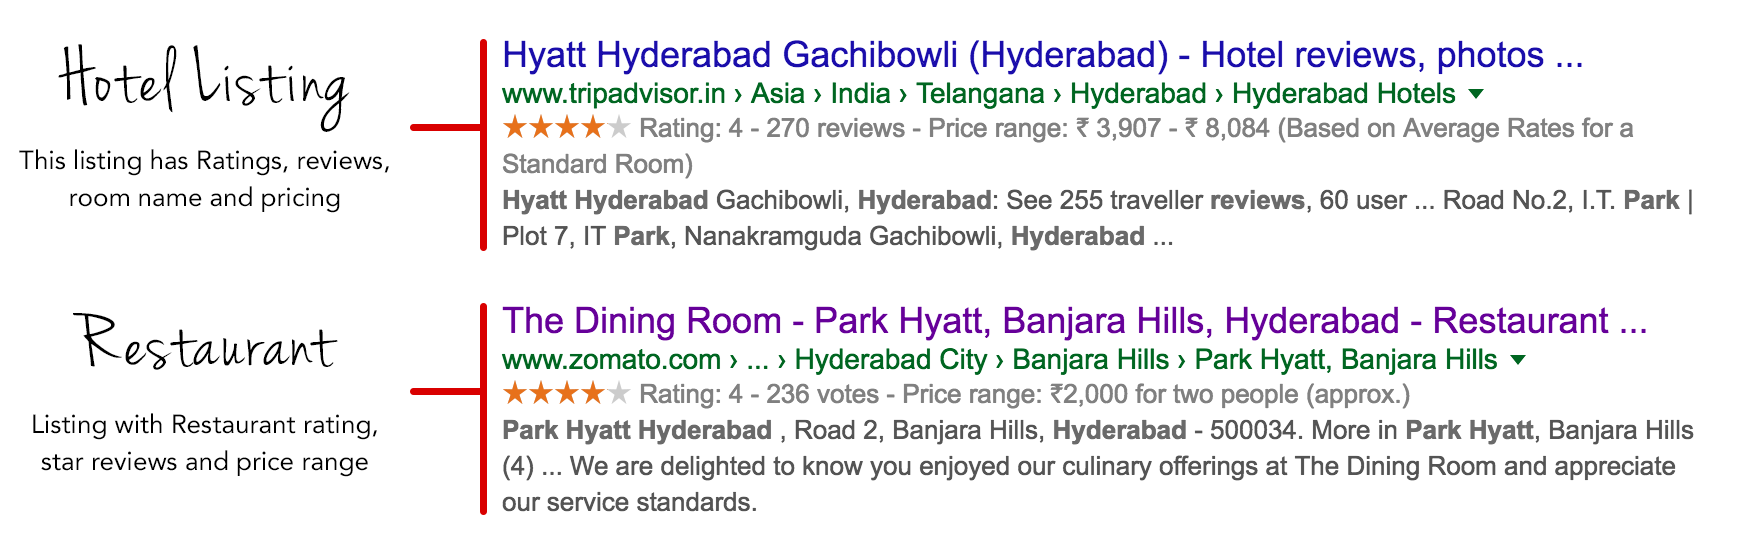 Example of the Structured data In Google Search.